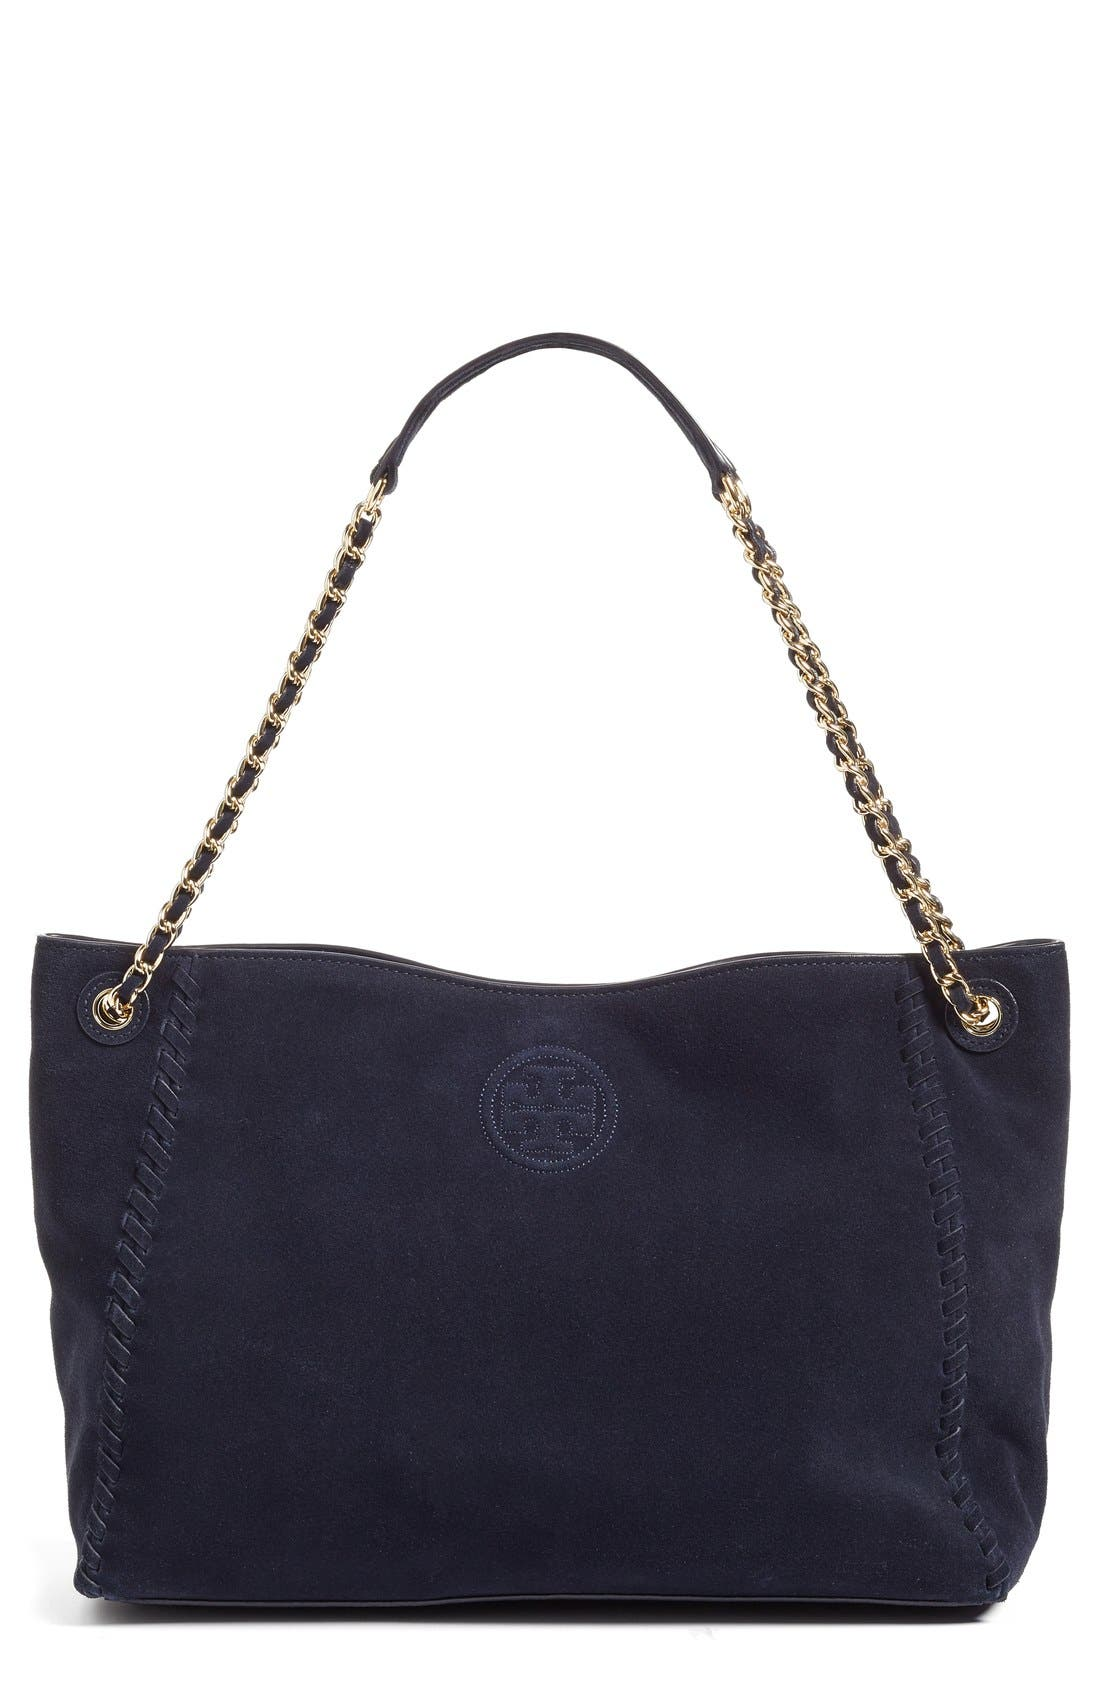 Alternate Image 1 Selected - Tory Burch 'Marion' Suede Tote